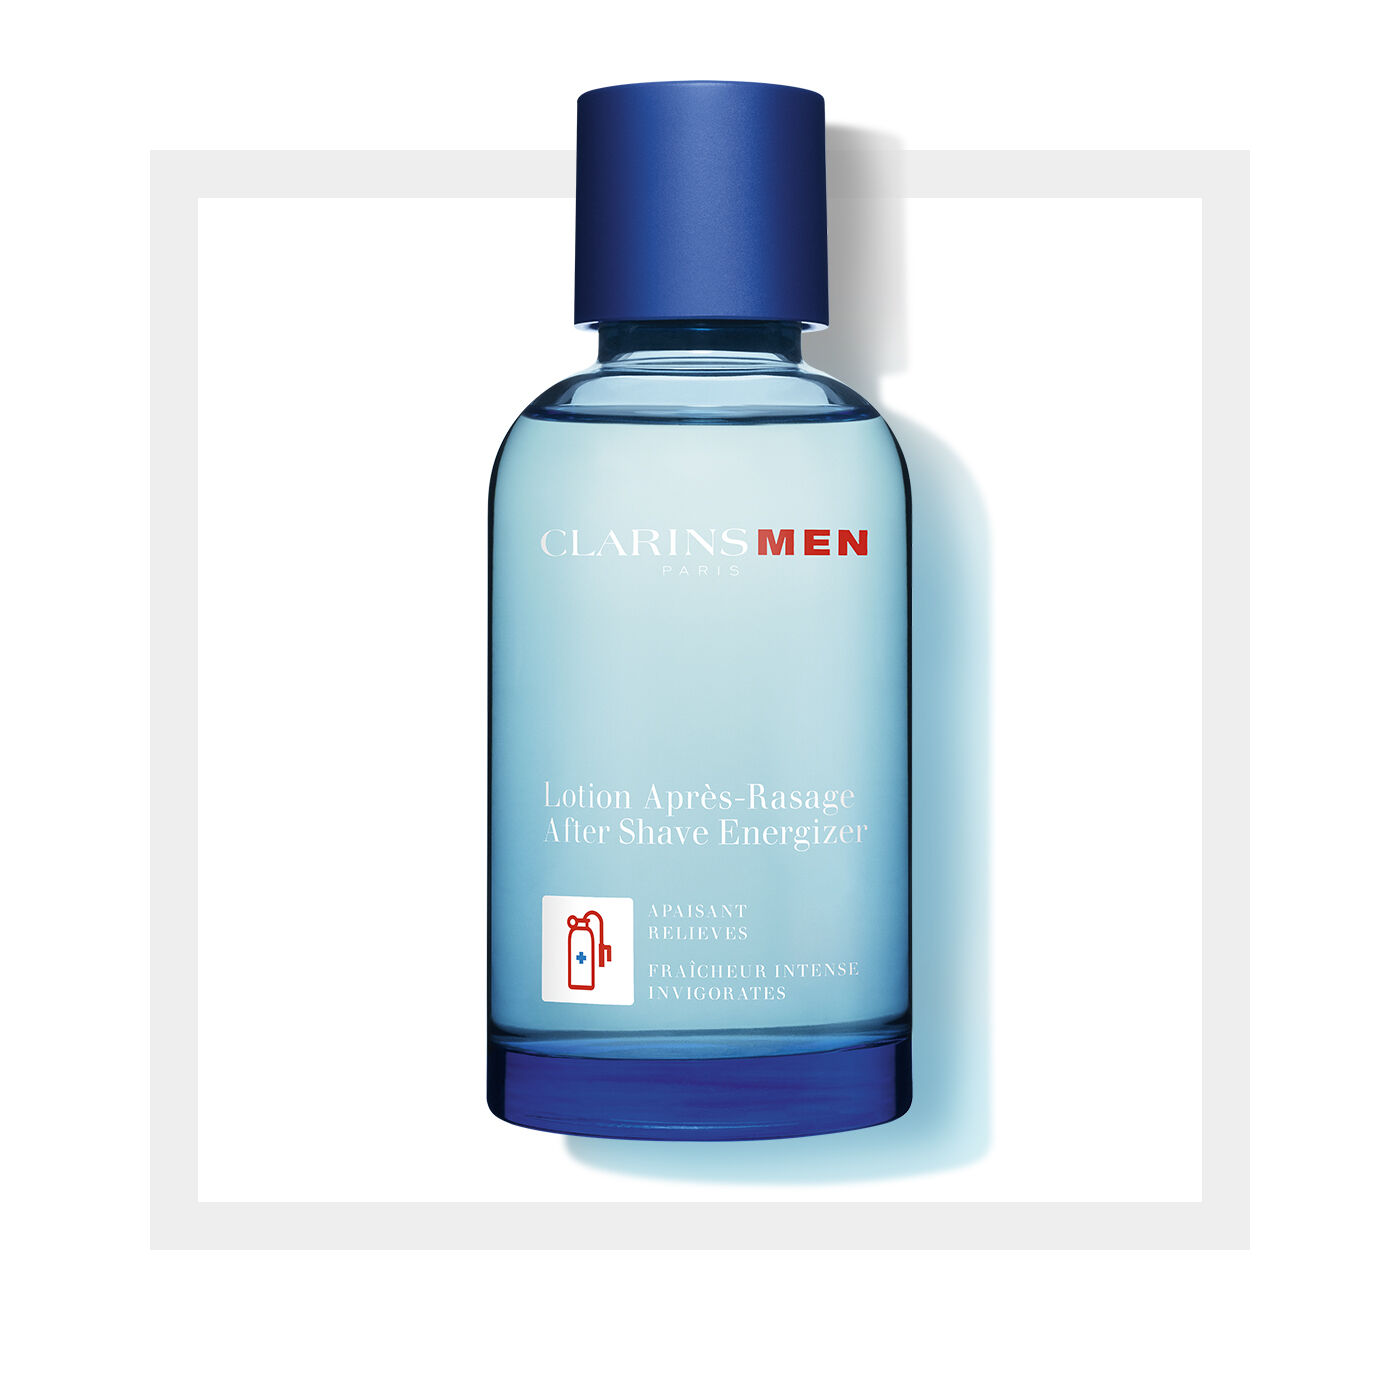 After-Shave%20Lotion%20Apr%C3%A8s-Rasage%20ClarinsMen